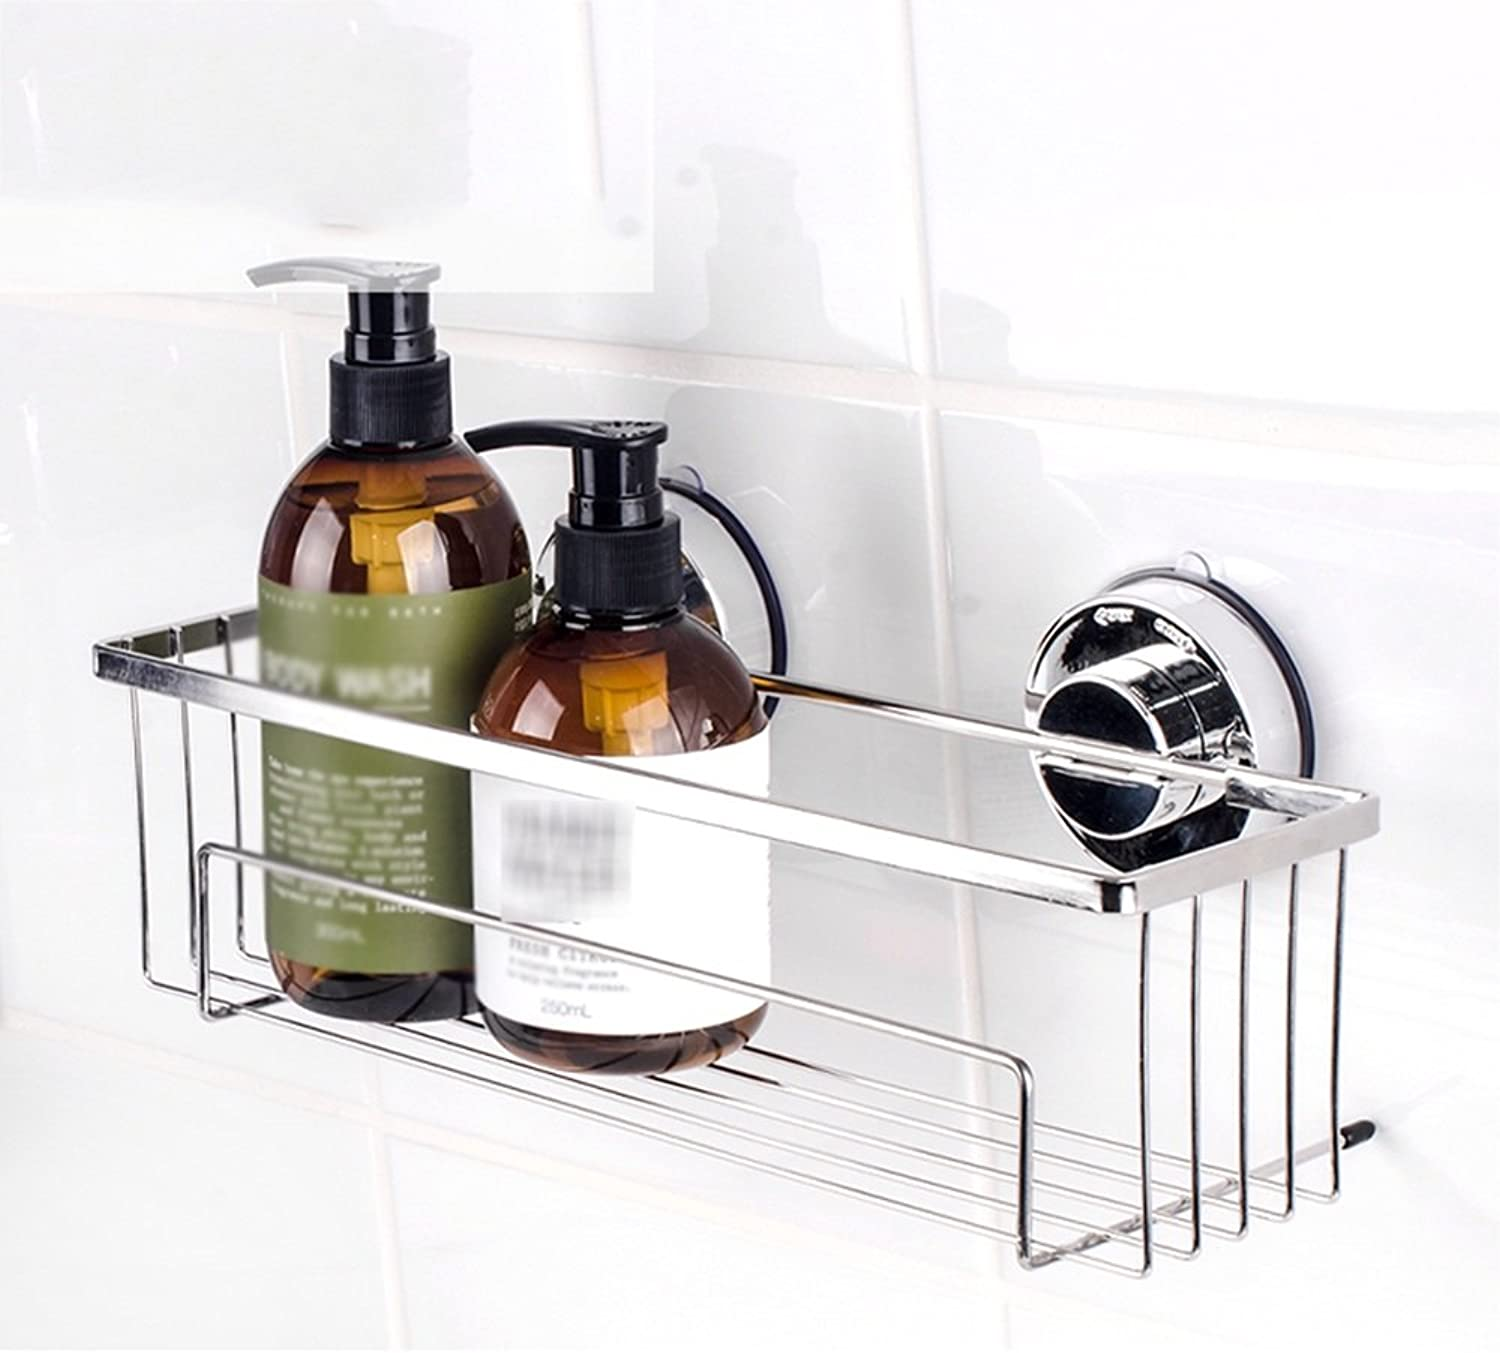 RFJJAL Bathroom Shelf Stainless Steel Silver Suction Wall Hanging Storage Shelf Toilet Bathroom Sink Rack No Drilling, 30  8  8.5cm